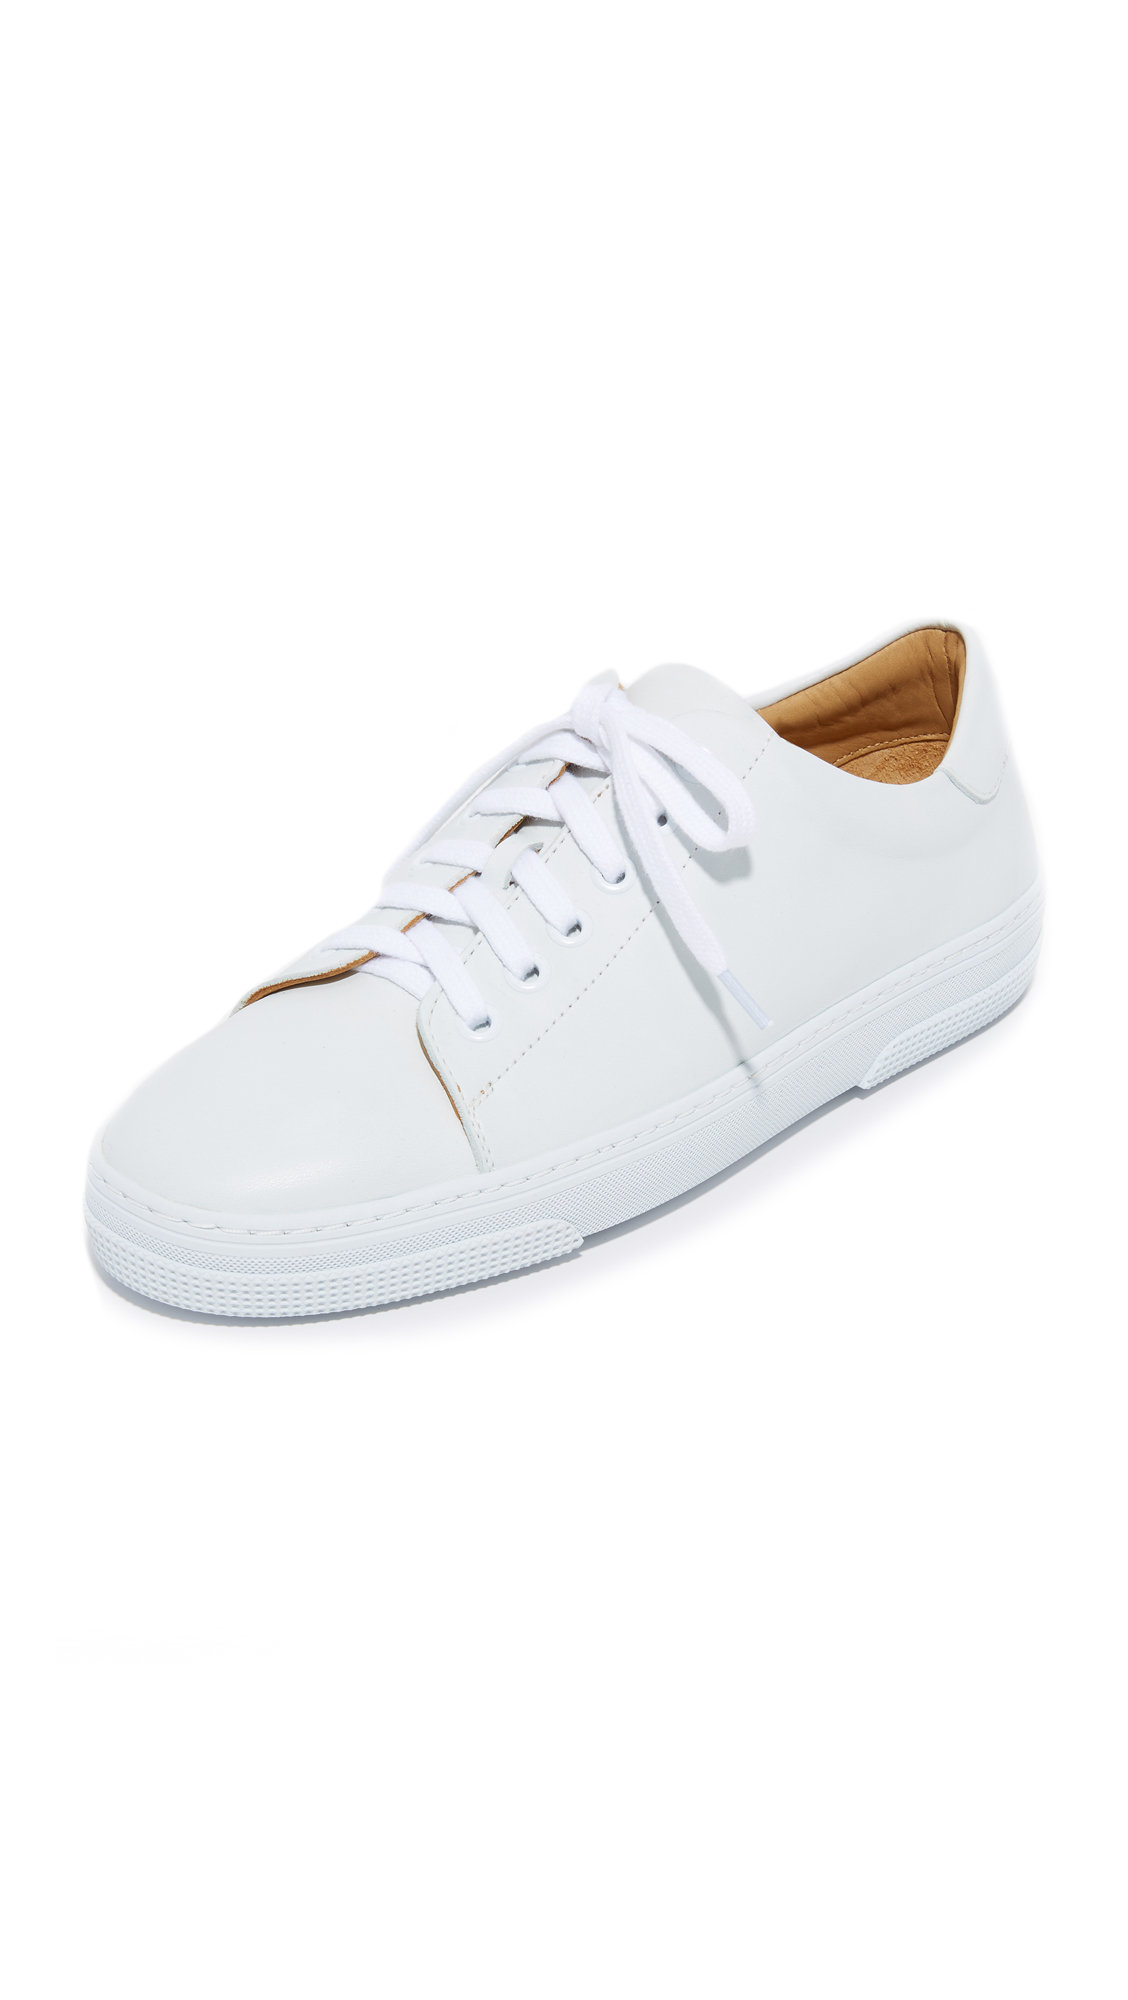 A.P.C. Steffi Tennis Sneakers - Blanc at Shopbop